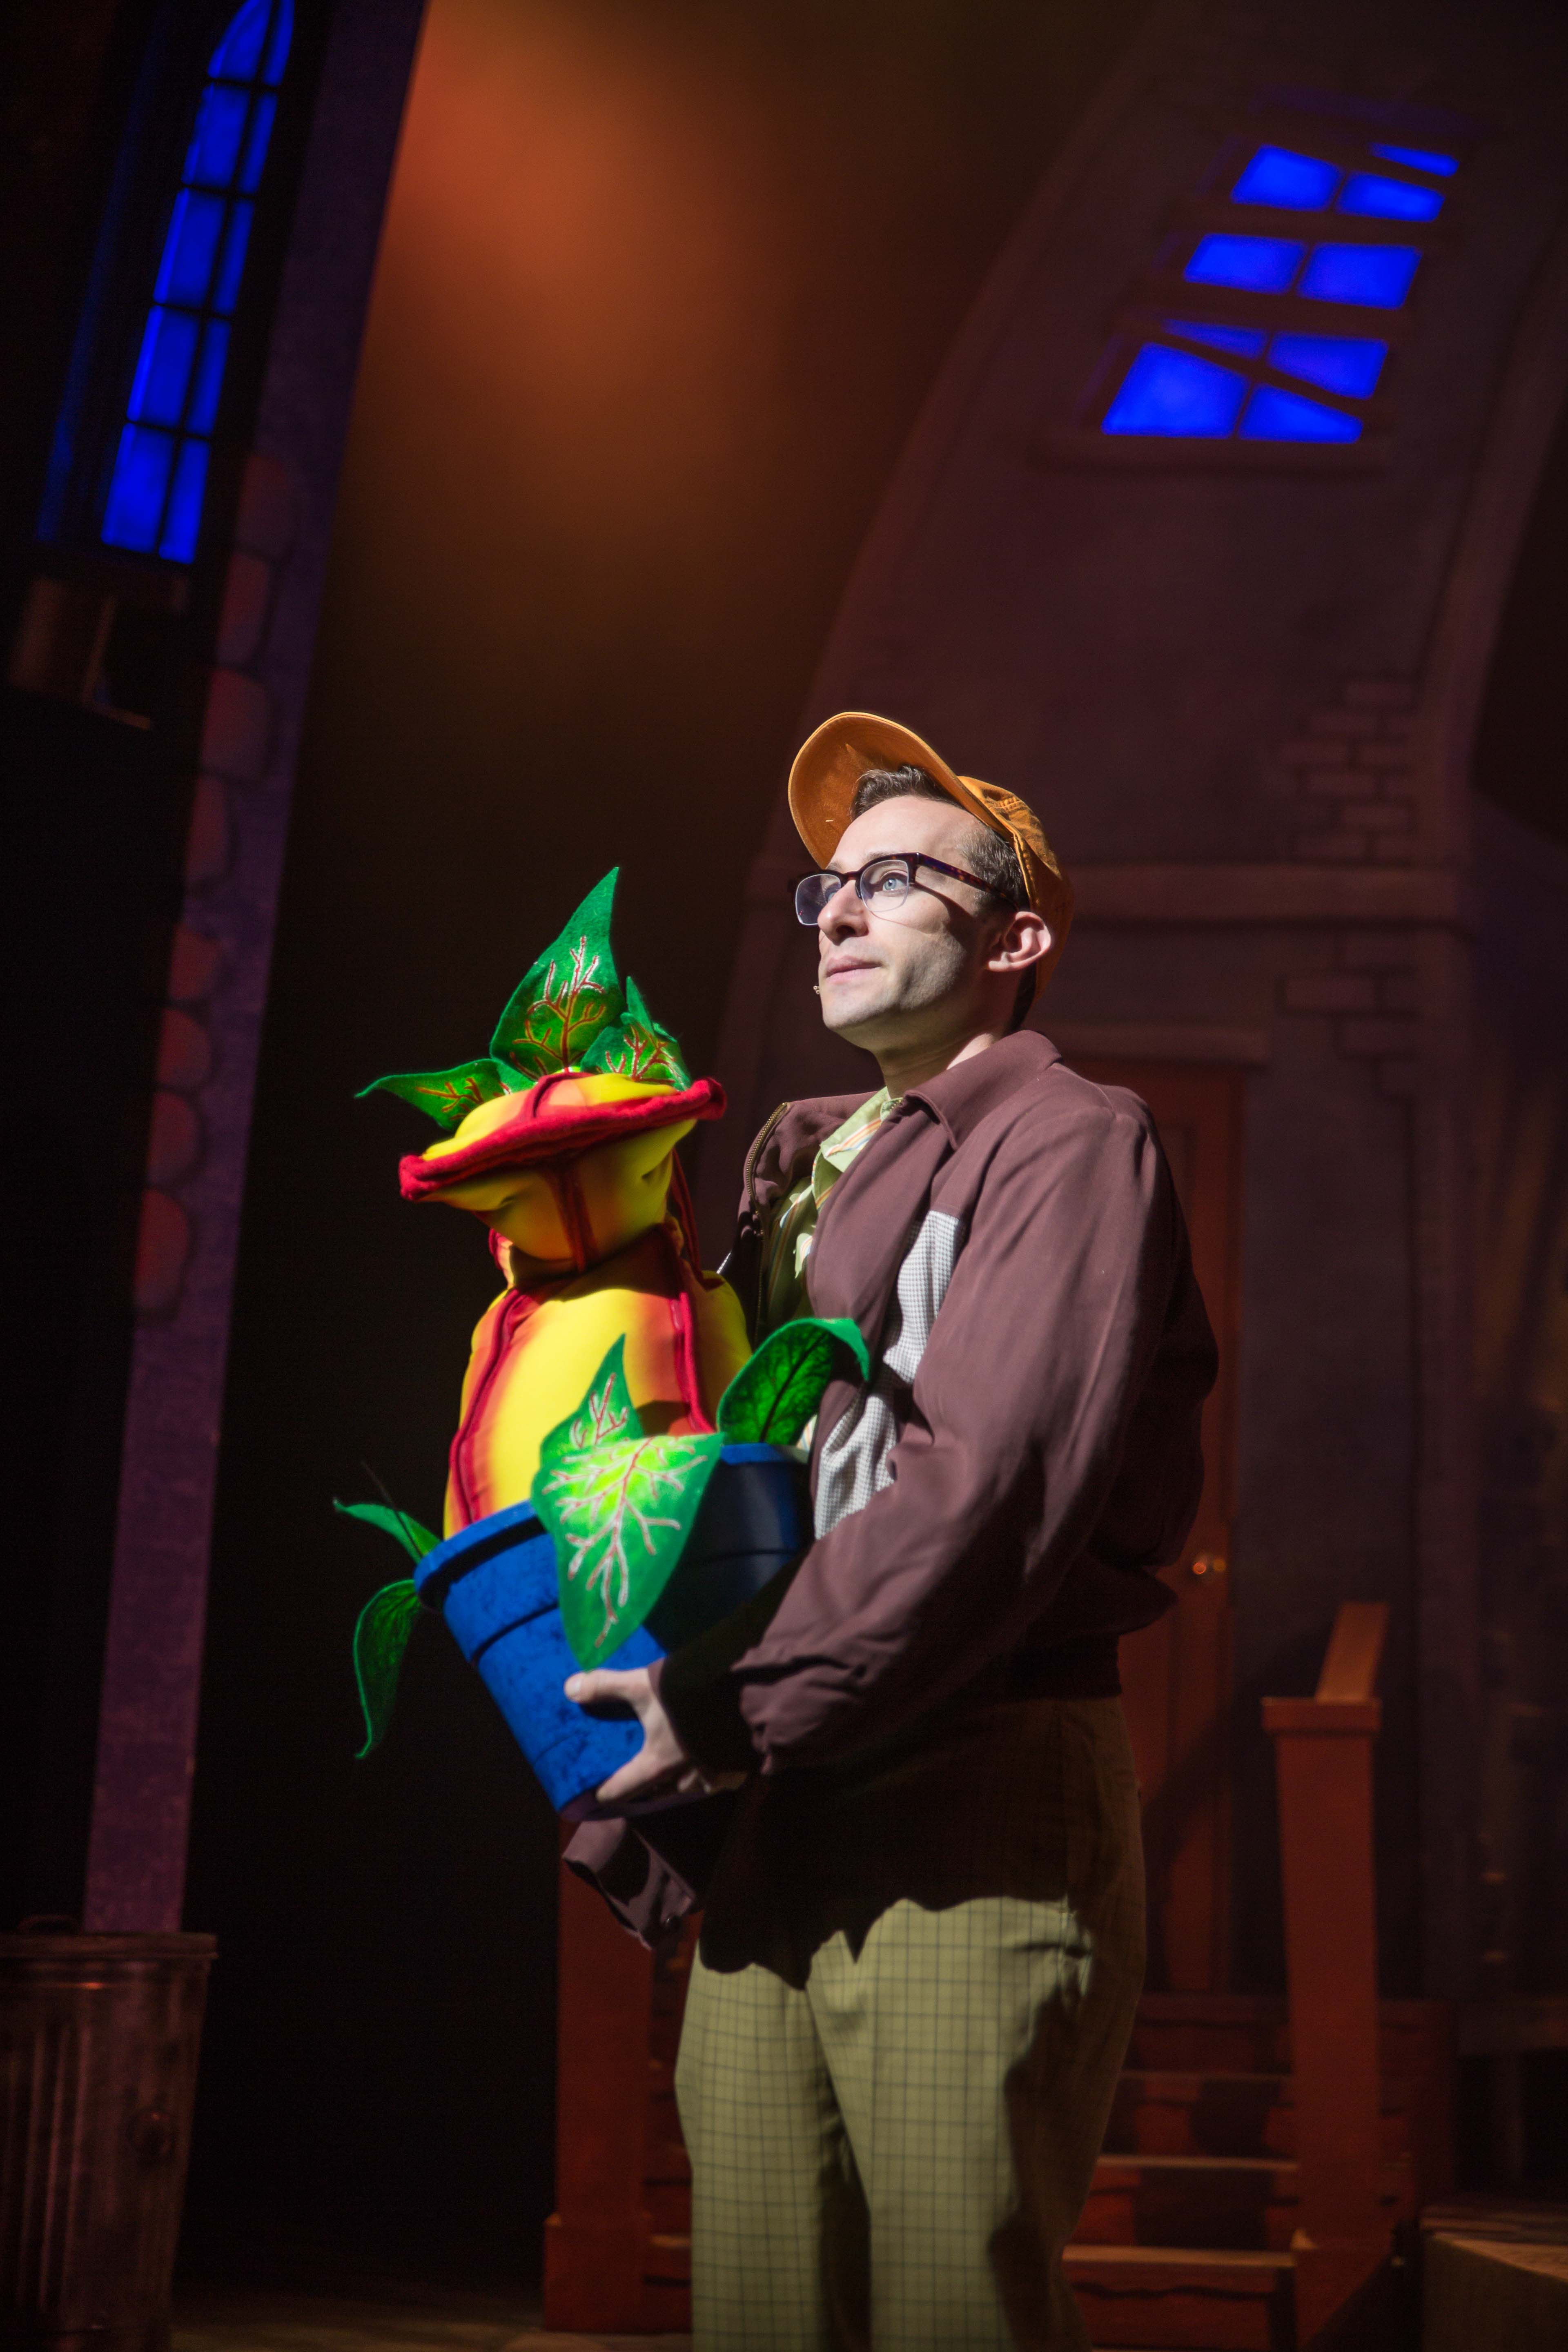 BWW Review: LITTLE SHOP OF HORRORS at Fulton Theatre